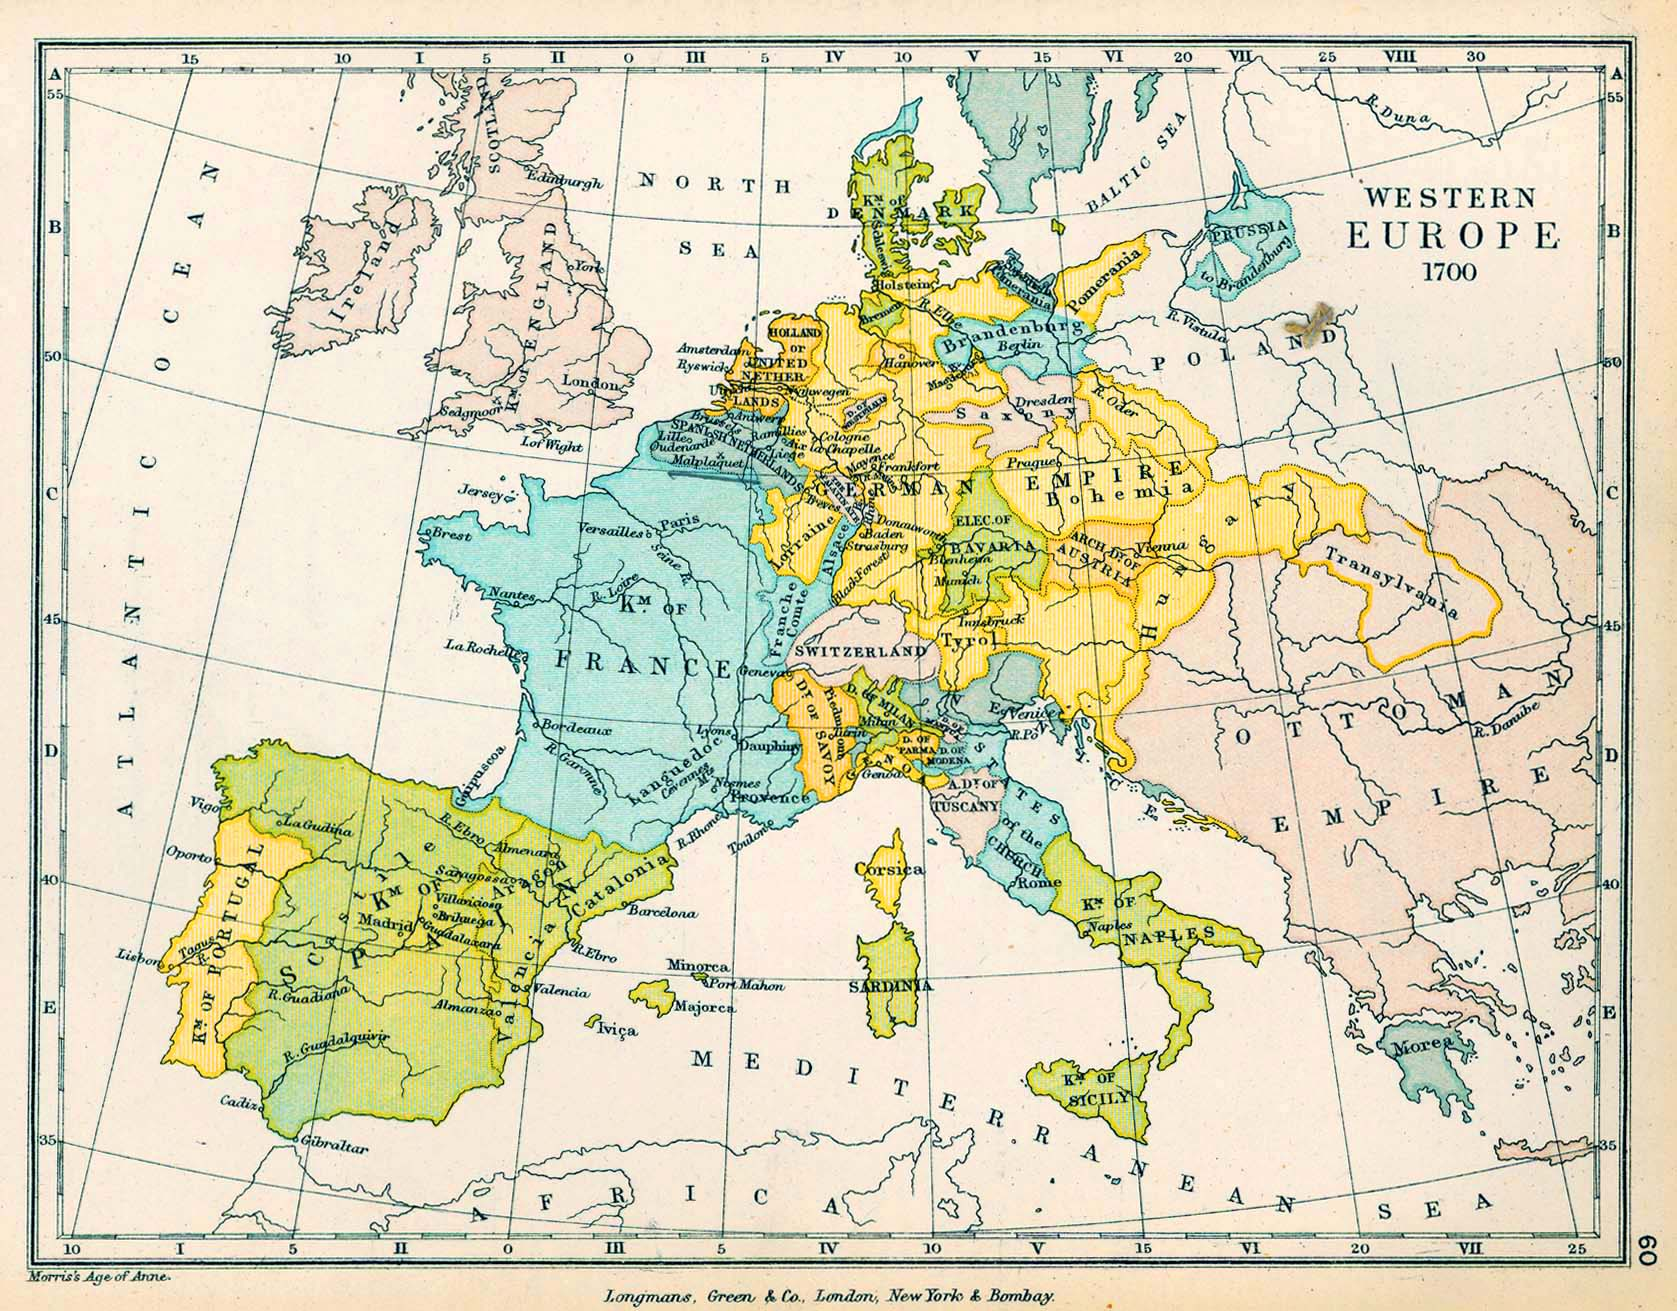 Map of Europe in 1700